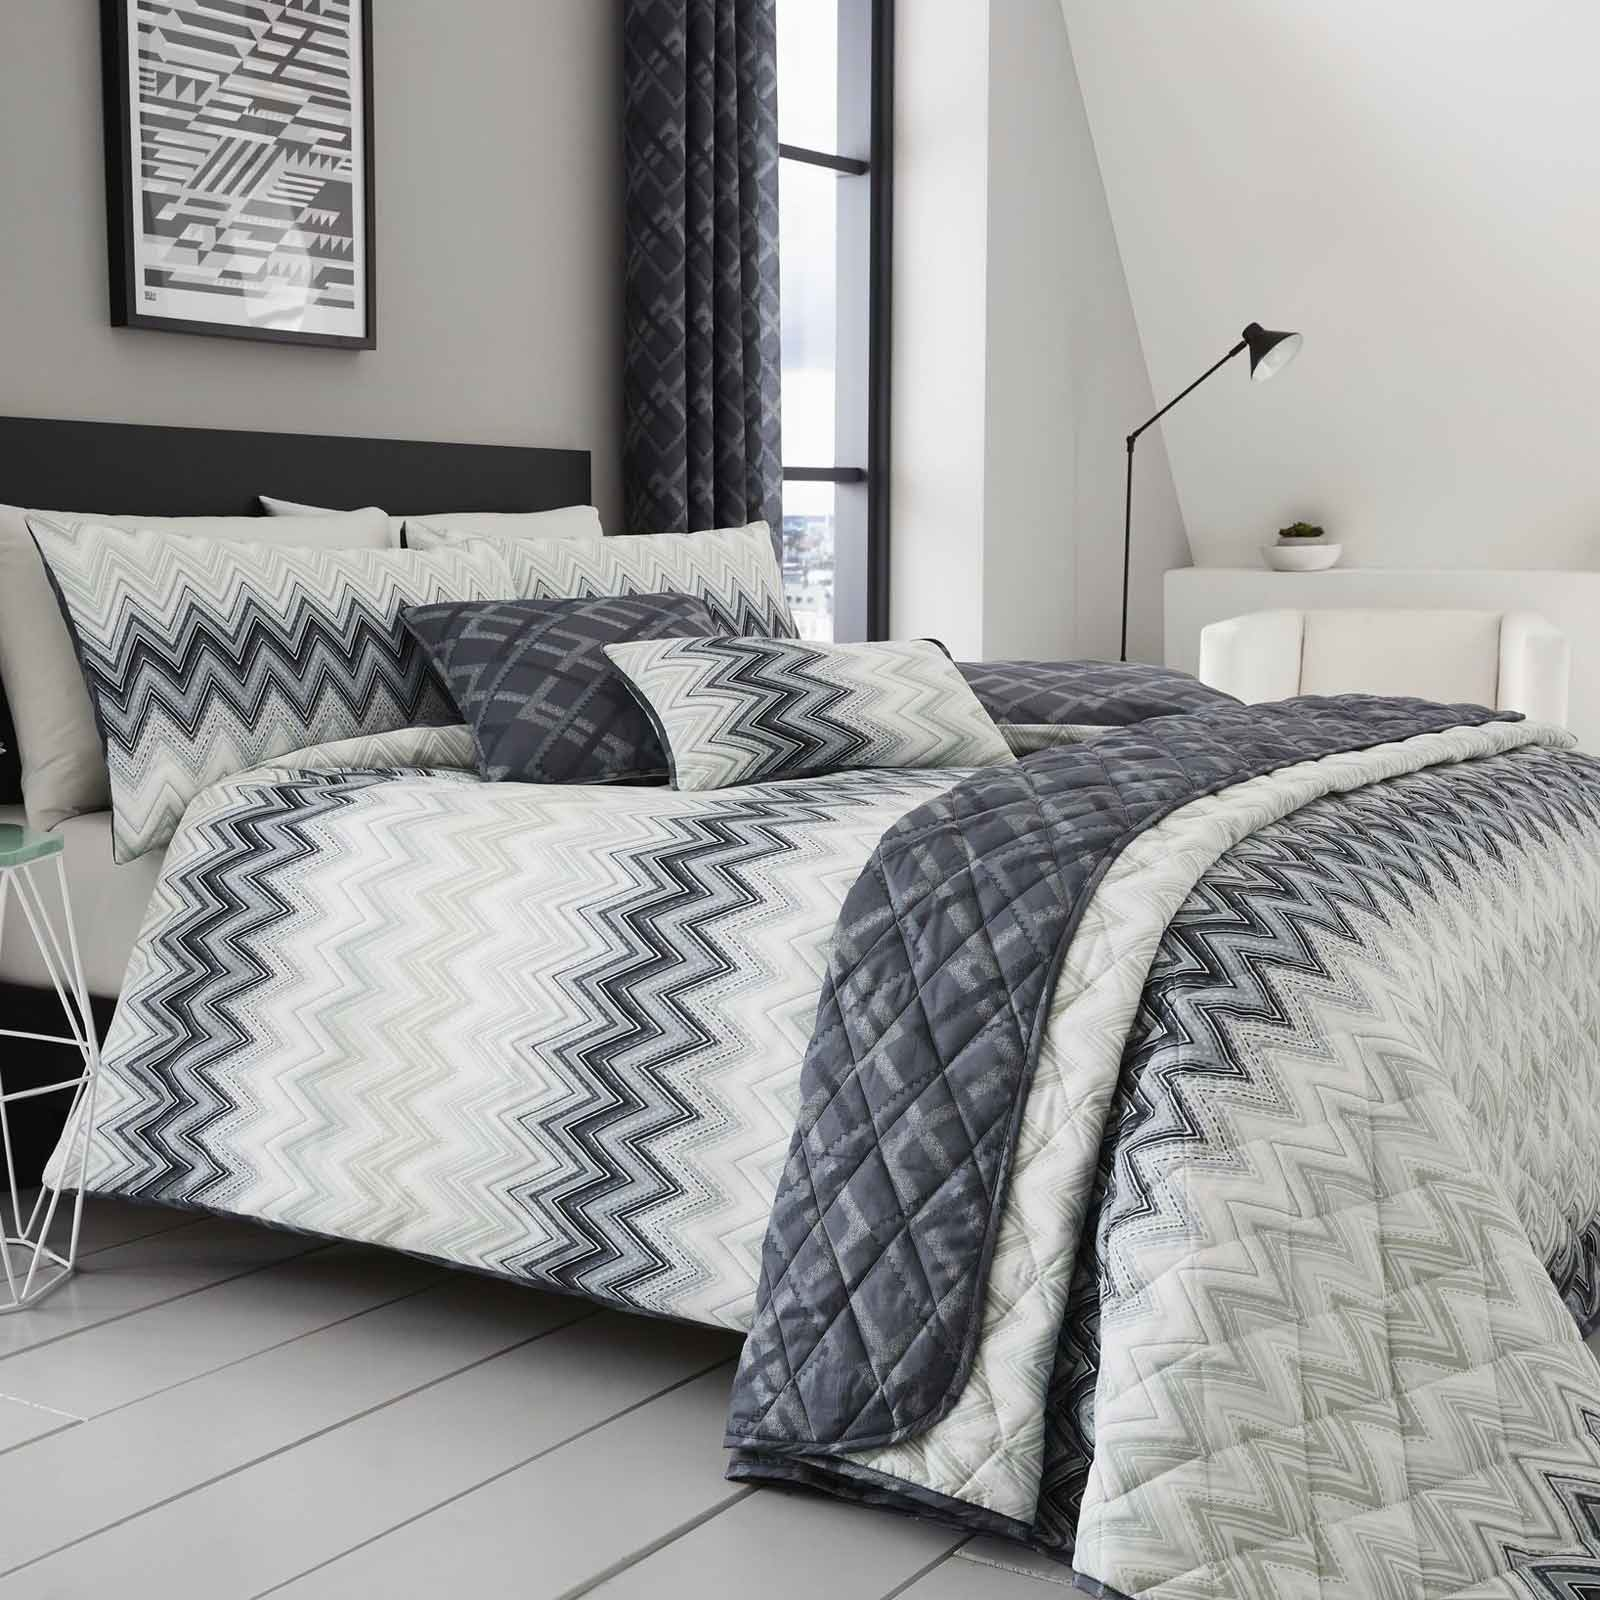 Stunning 200 thread count duvet cover set with a contemporary chevron  print. Fully machine washable. Single sets include one pillow case and all  other sized ... 1a5e5e3a5